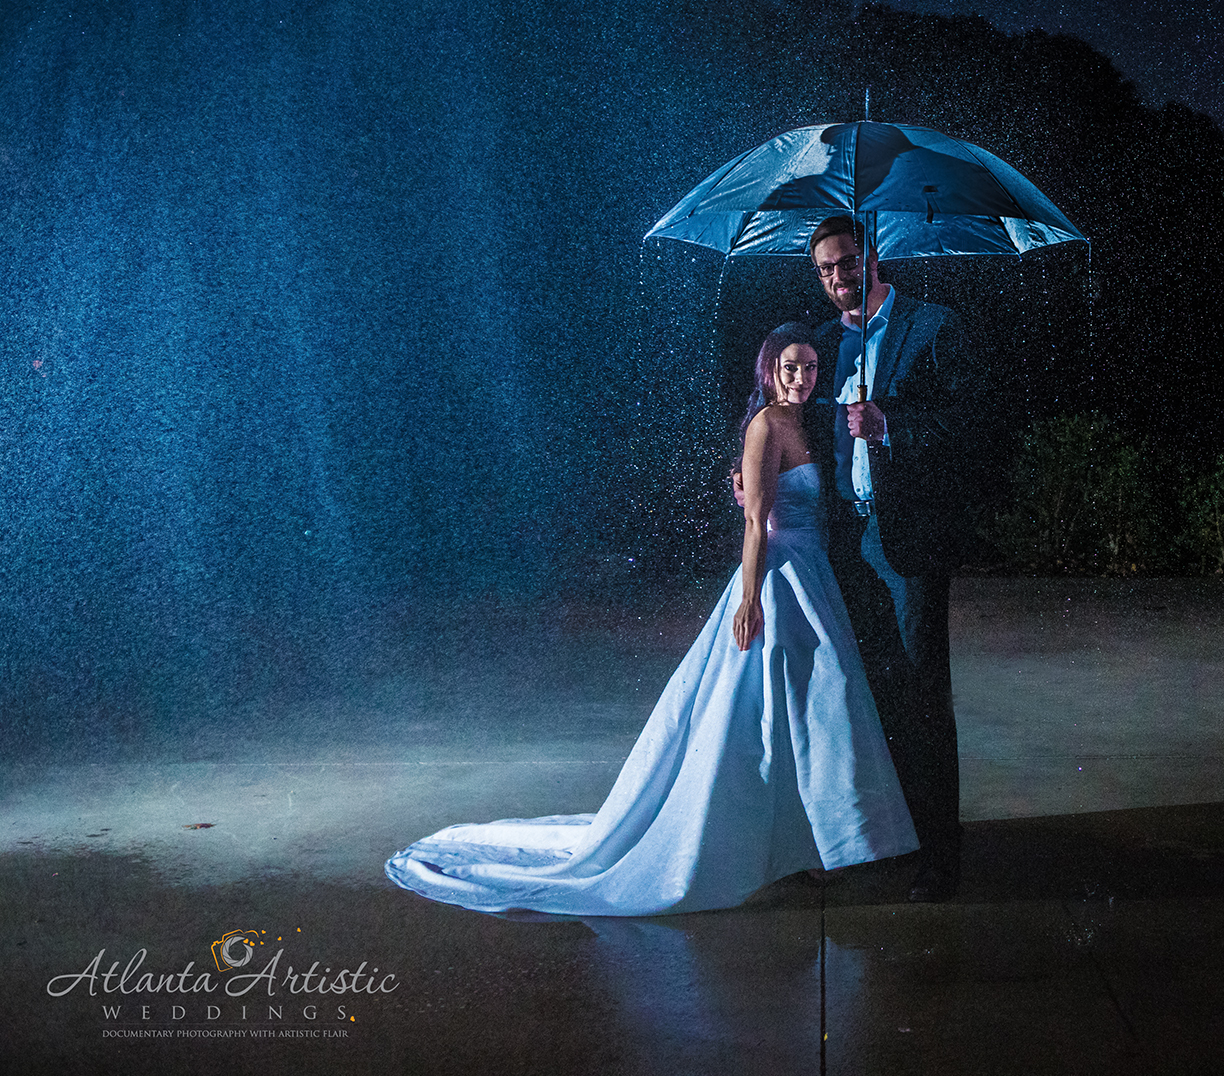 Wedding Photography Tips Flash: Useful Advice For Shooting At Night